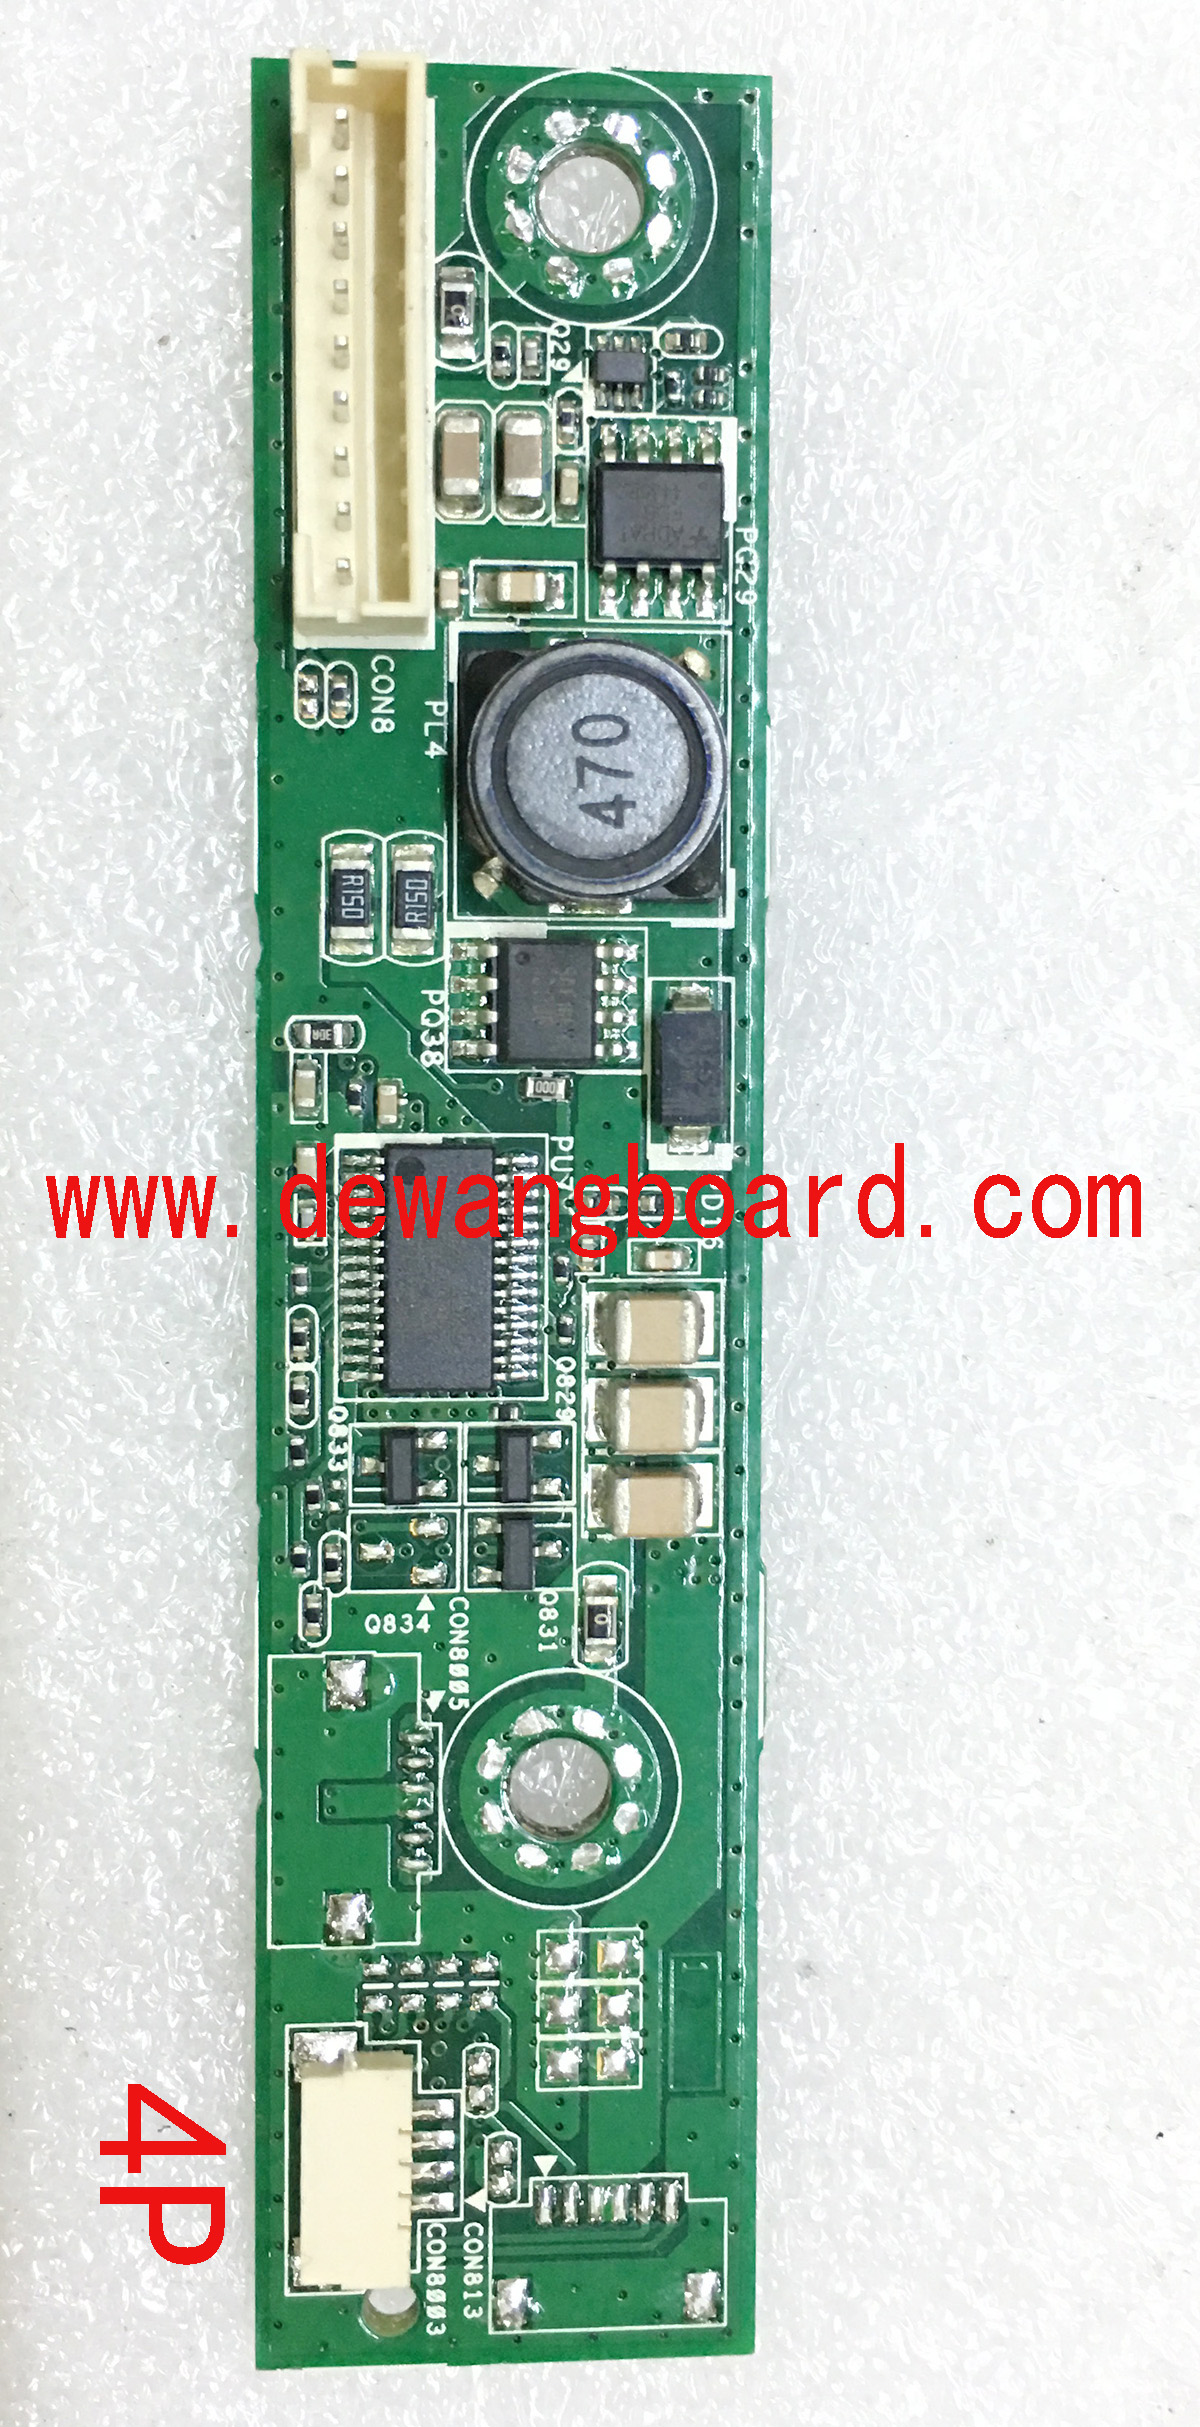 OP-CONVERTER BD led Inverter board, high pressure